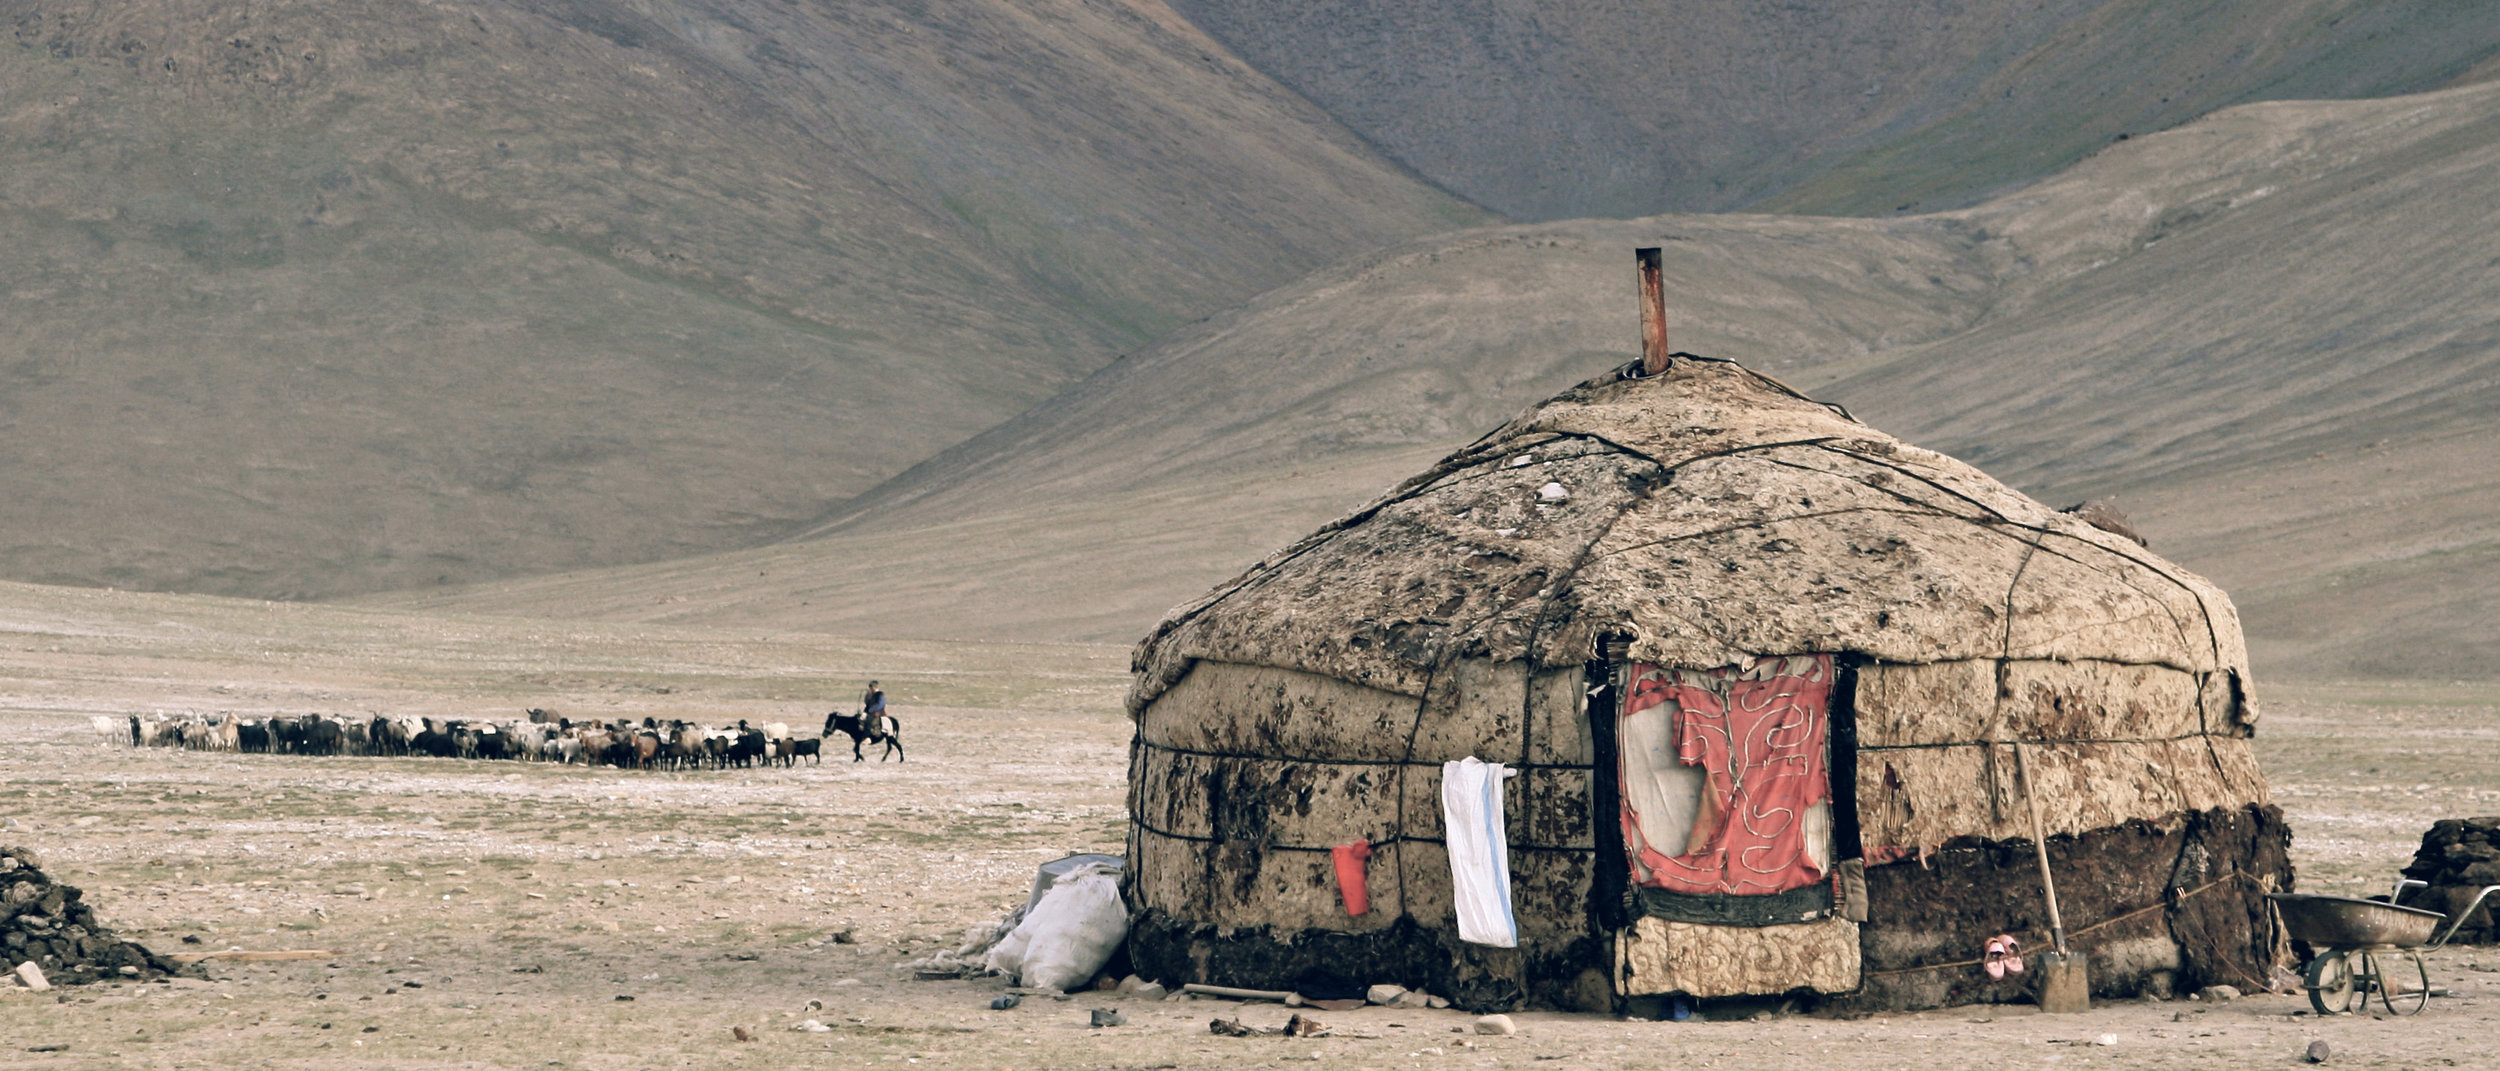 pamirs-silkroad-borderlands-inertia-network-nicole-smoot-tajikistan-pakistan-xinjiang-kashgar-china.jpg